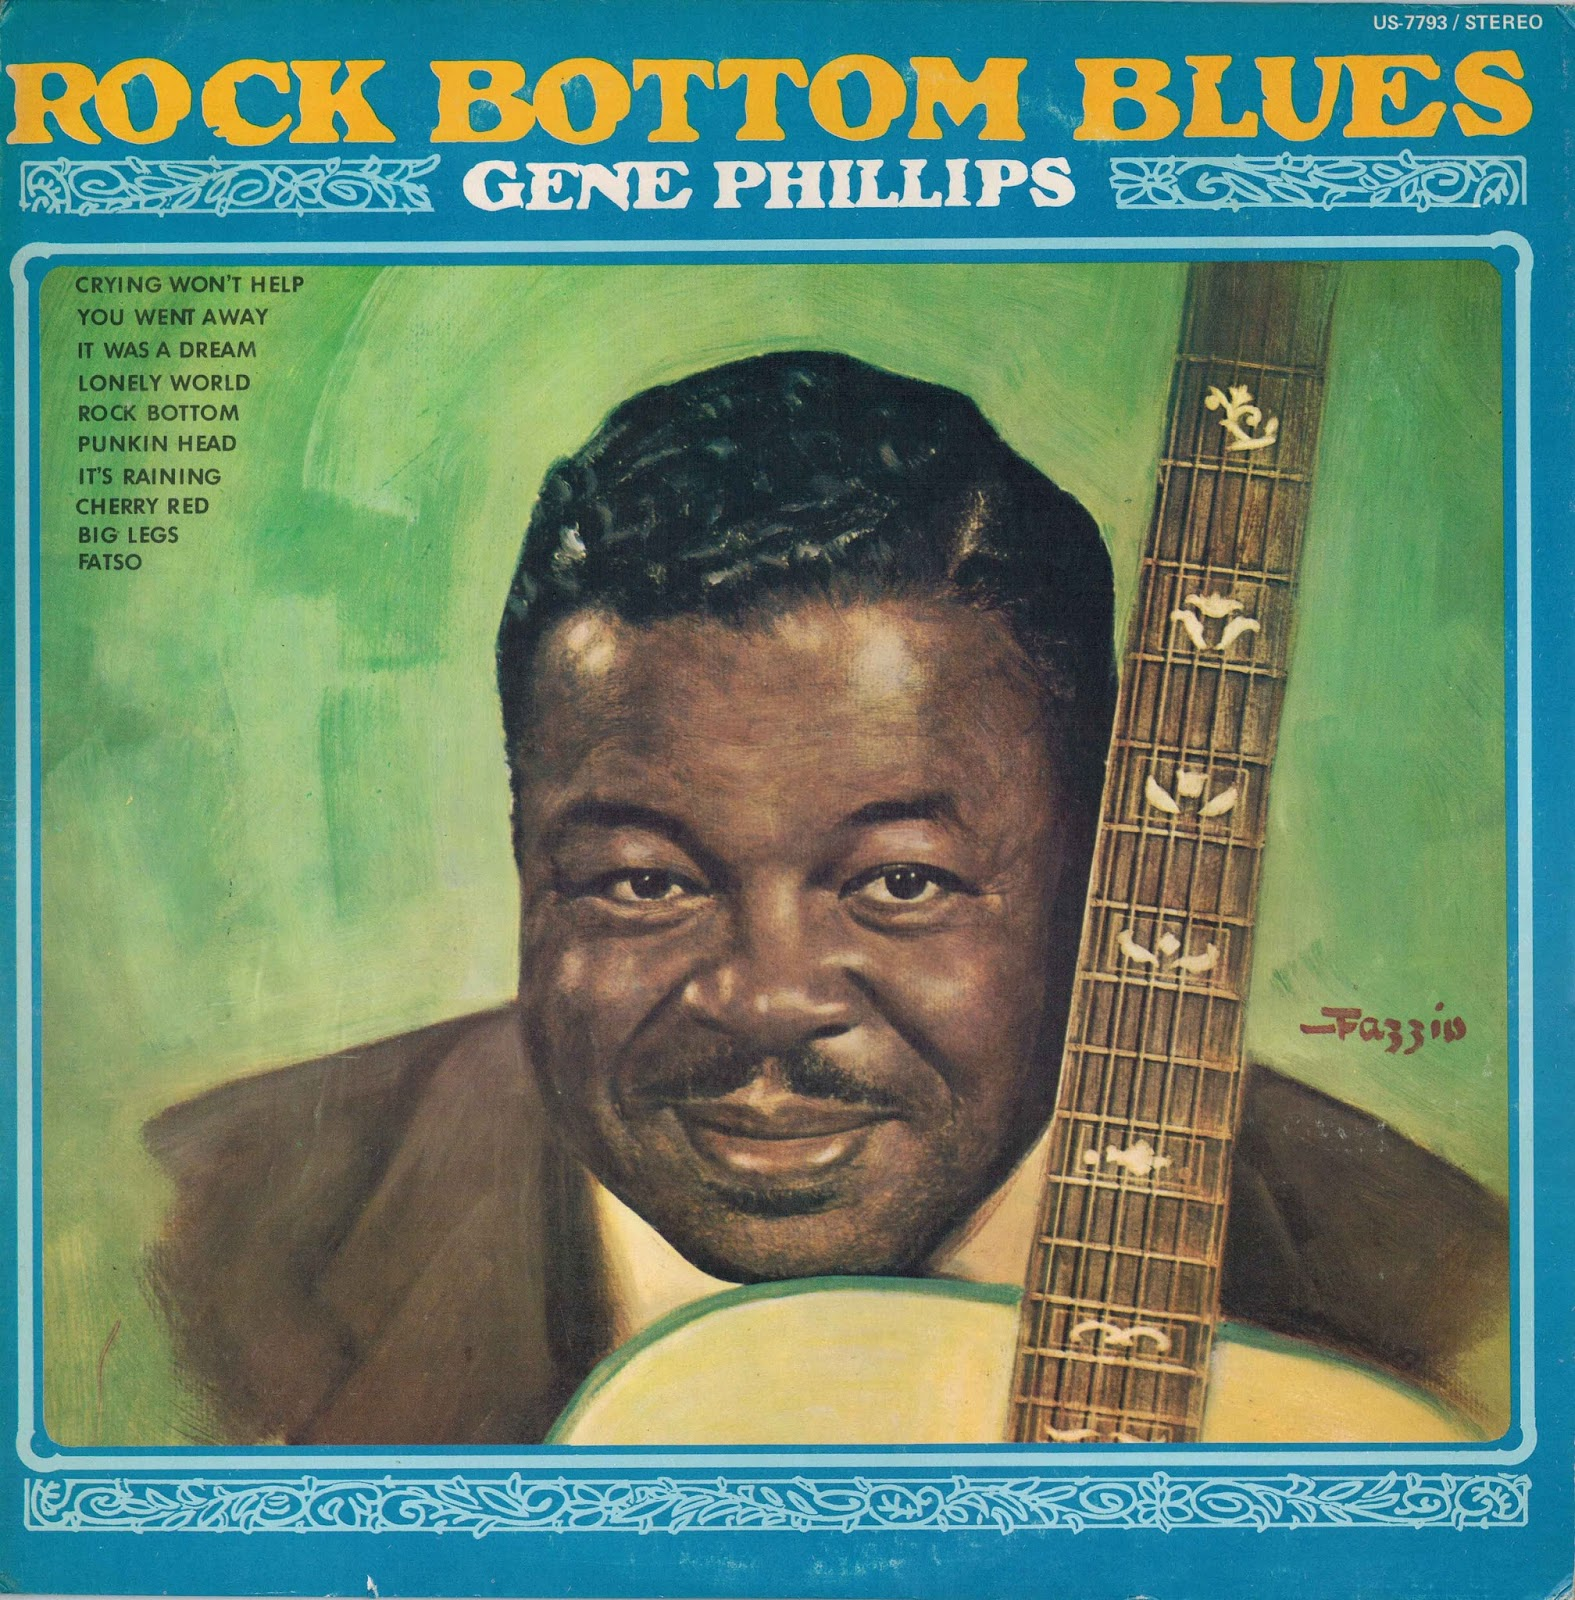 The street rock bottom blues band some legal